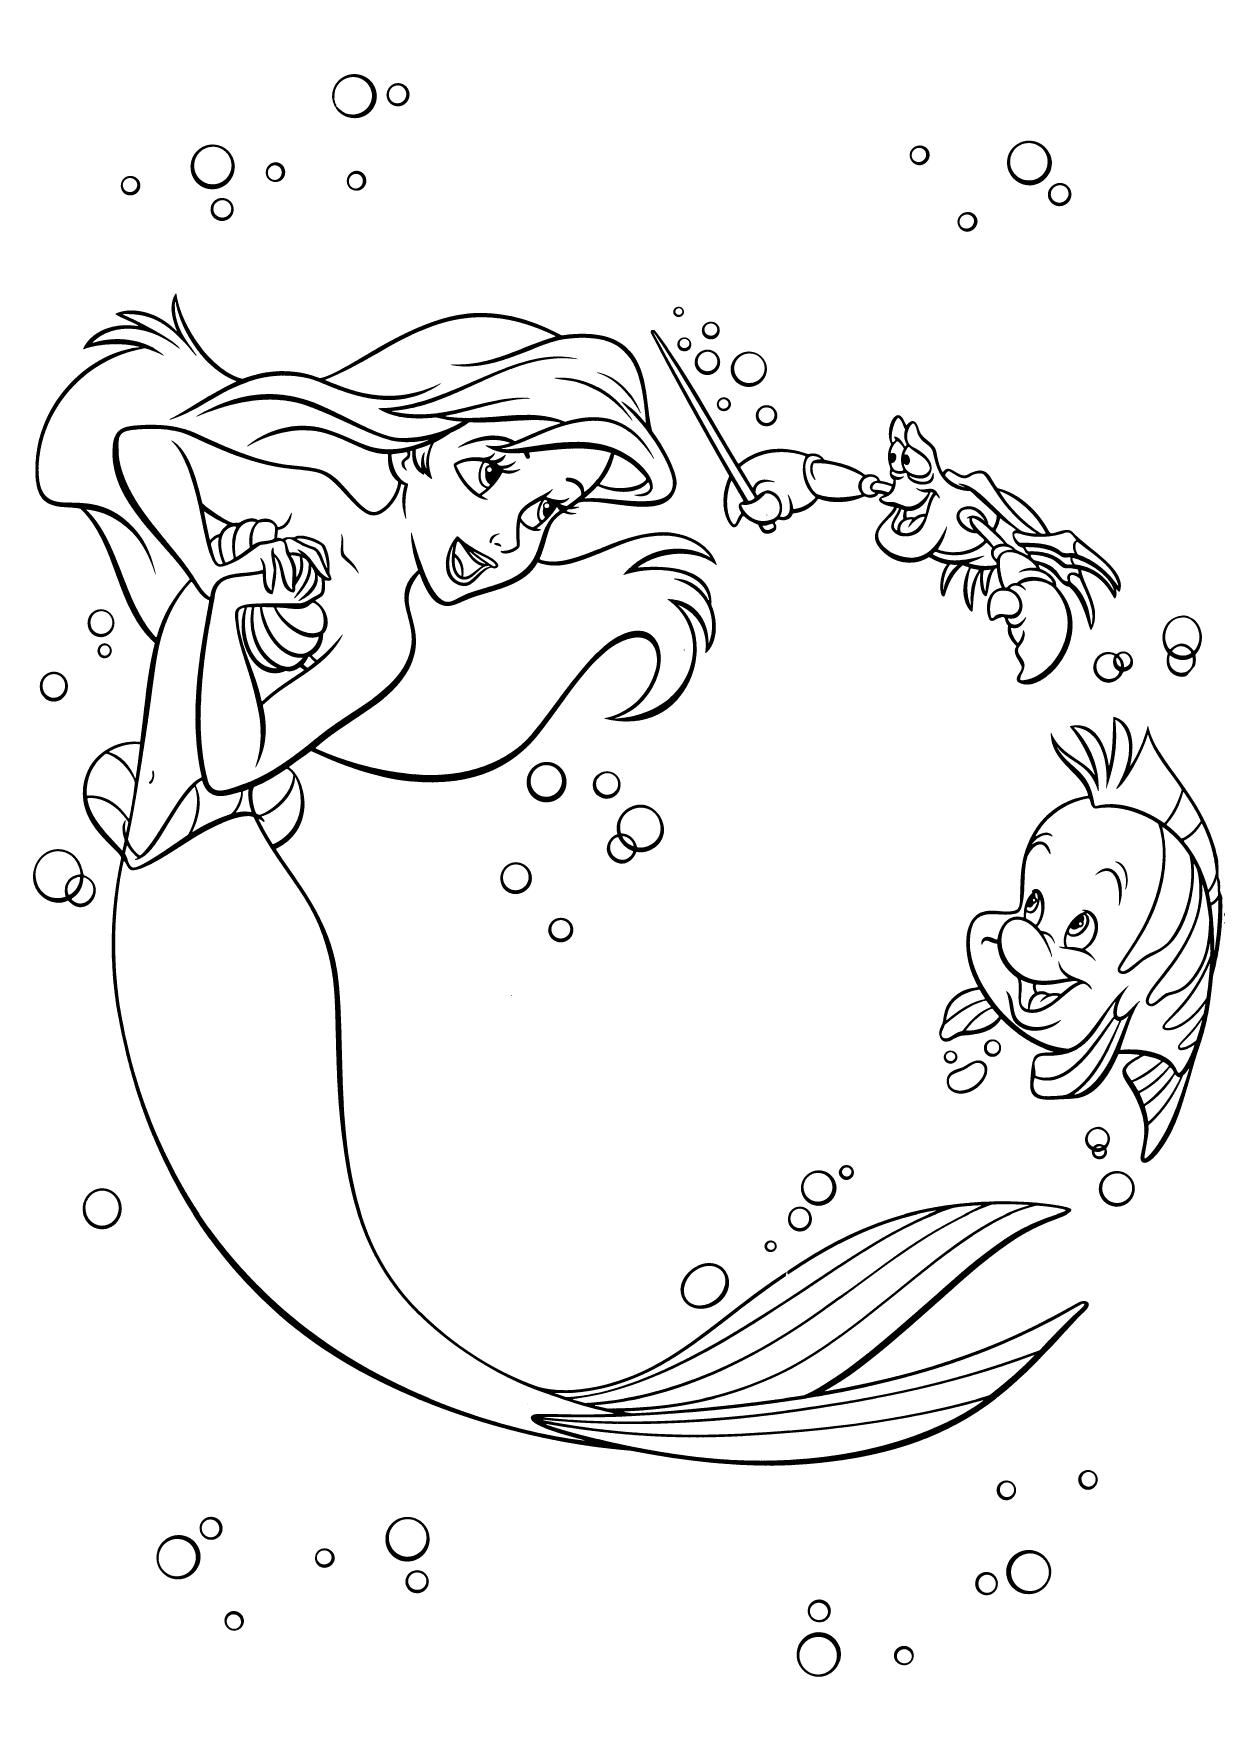 Disney Coloring Book Pdf Only Coloring Pages Ariel Coloring Pages Mermaid Coloring Pages Disney Princess Coloring Pages